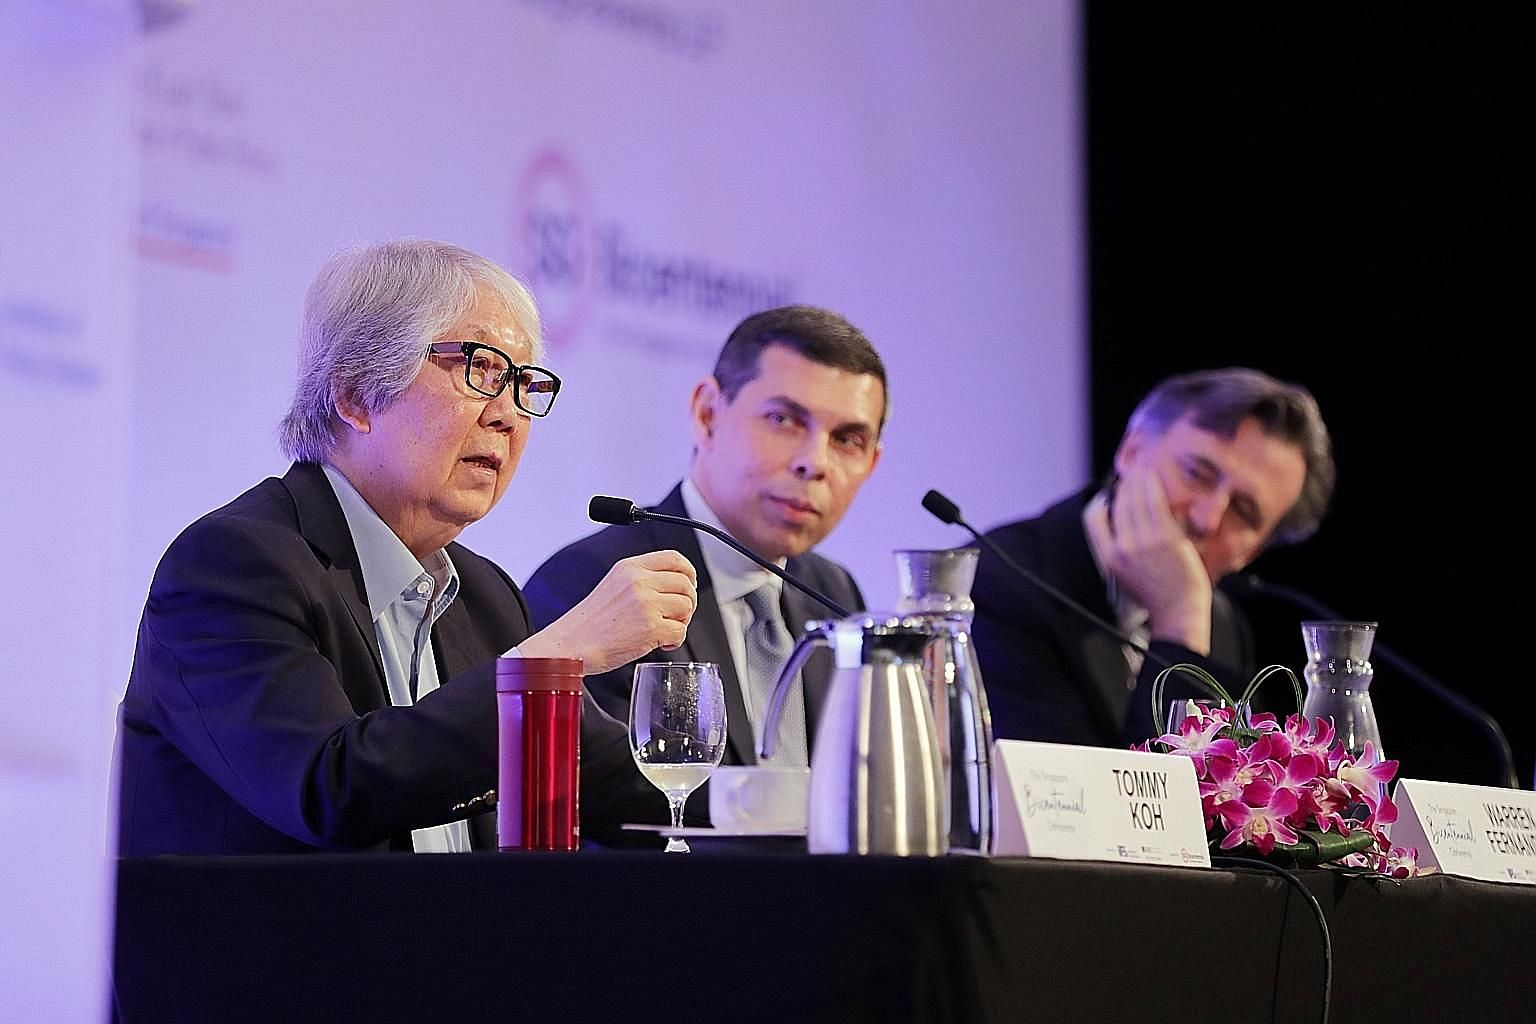 Professor Tommy Koh (far left) speaking at a dialogue at the Singapore Bicentennial Conference yesterday, with The Straits Times editor Warren Fernandez (centre), who was chairing the panel, and Bloomberg News editor-in-chief John Micklethwait. Forme